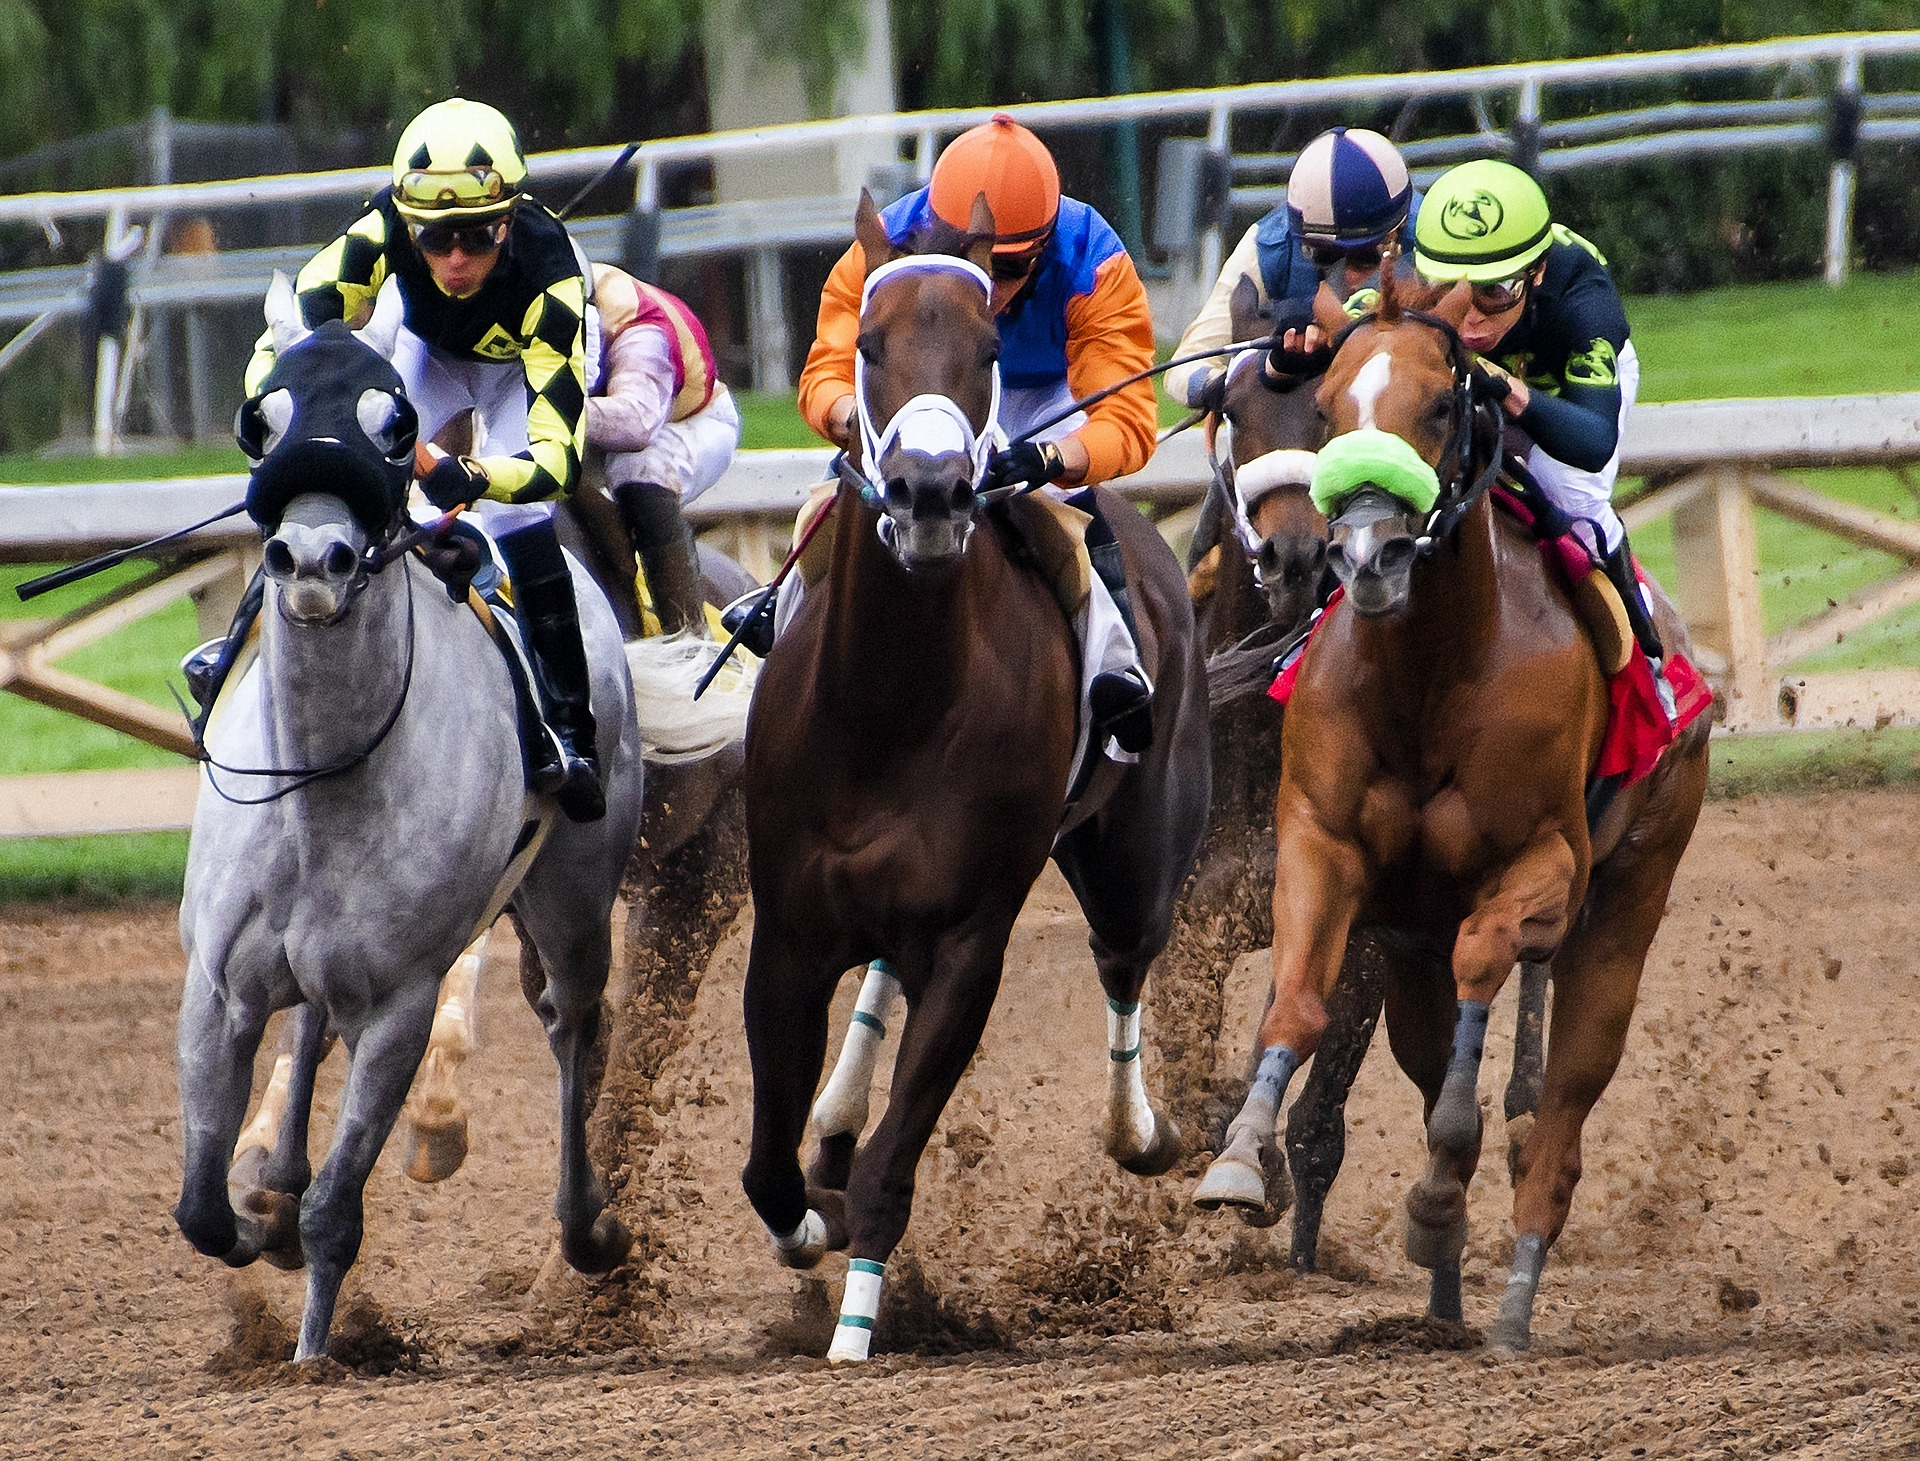 Harness racing has experienced both a decline and a resurgence.